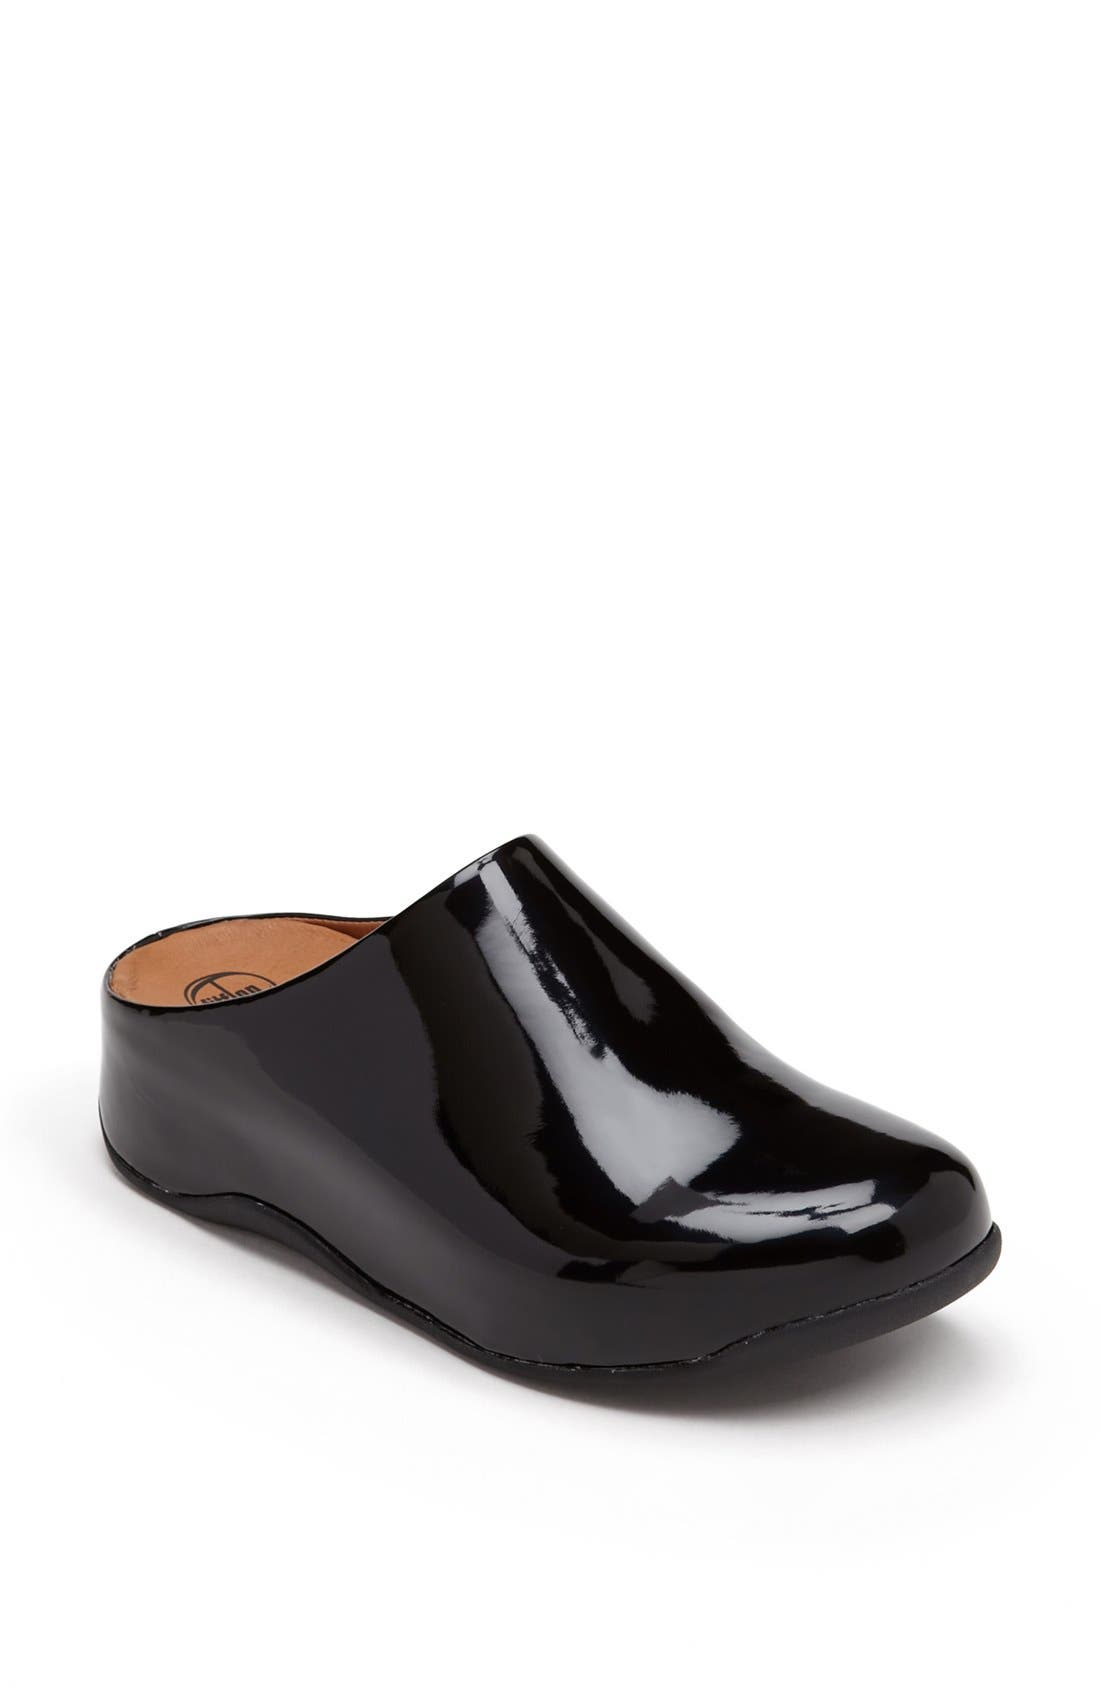 Alternate Image 1 Selected - FitFlop™ 'Shuv' Clog (Women)